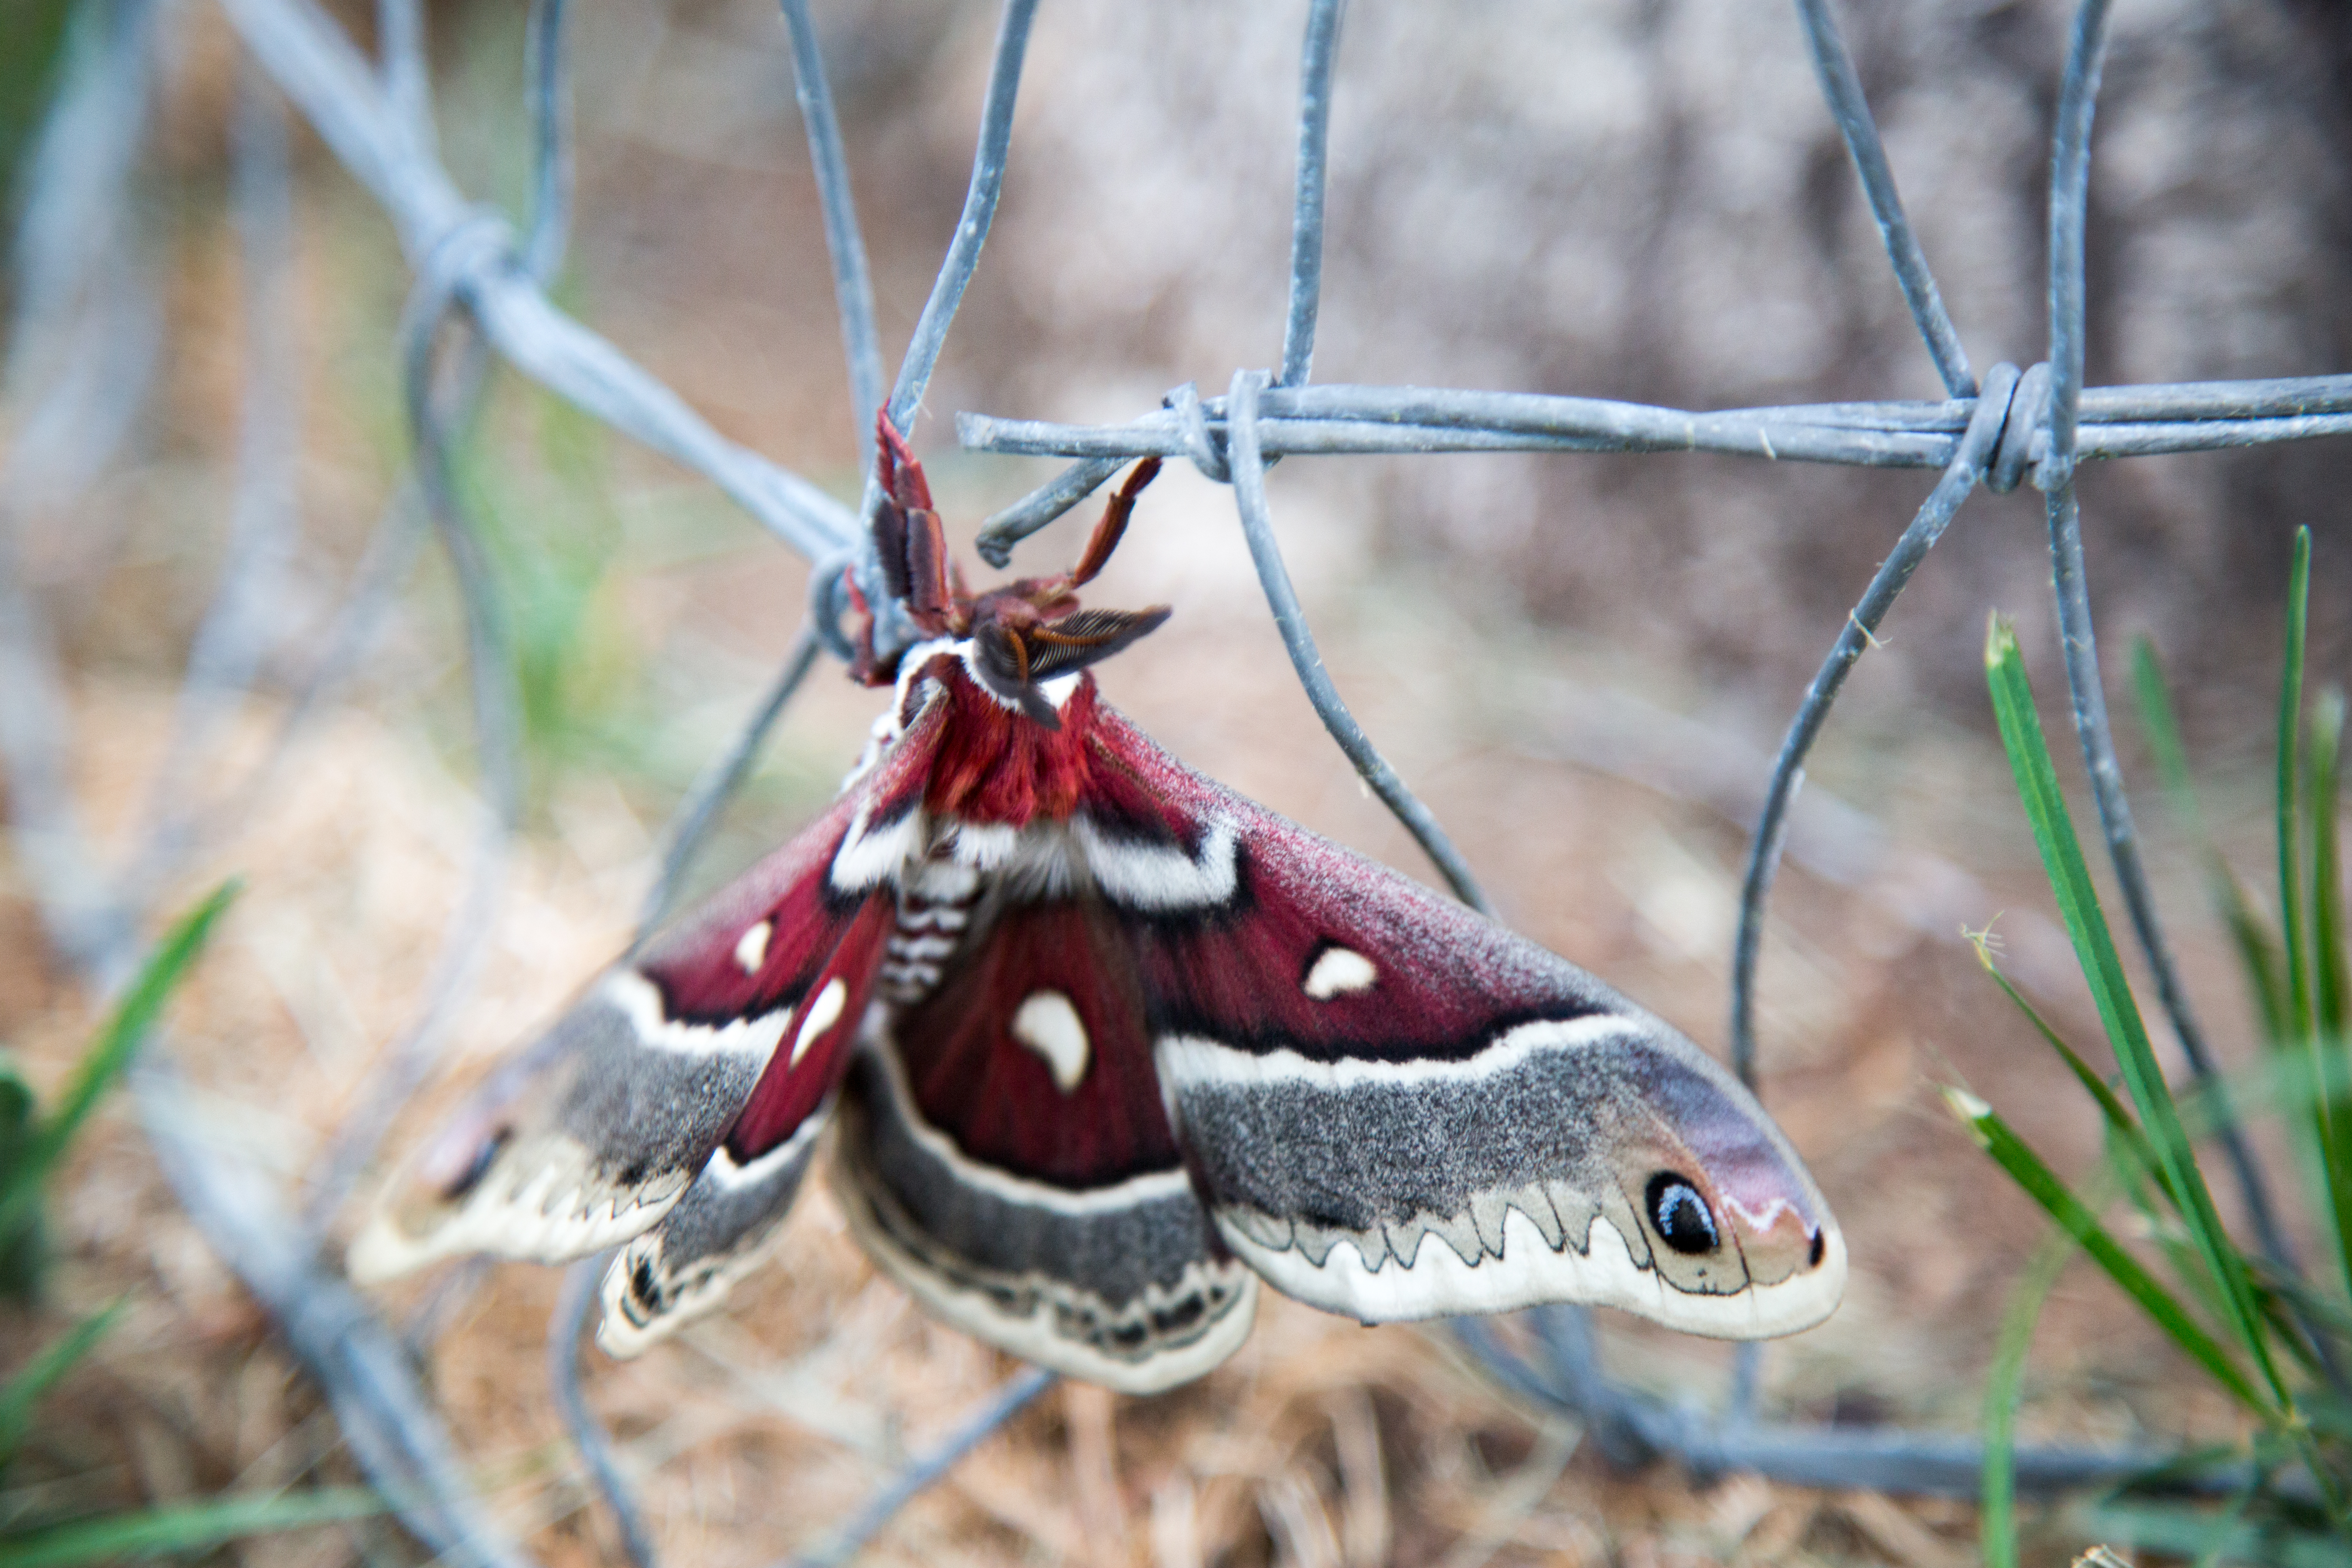 Promethea silkmoth in Colorado